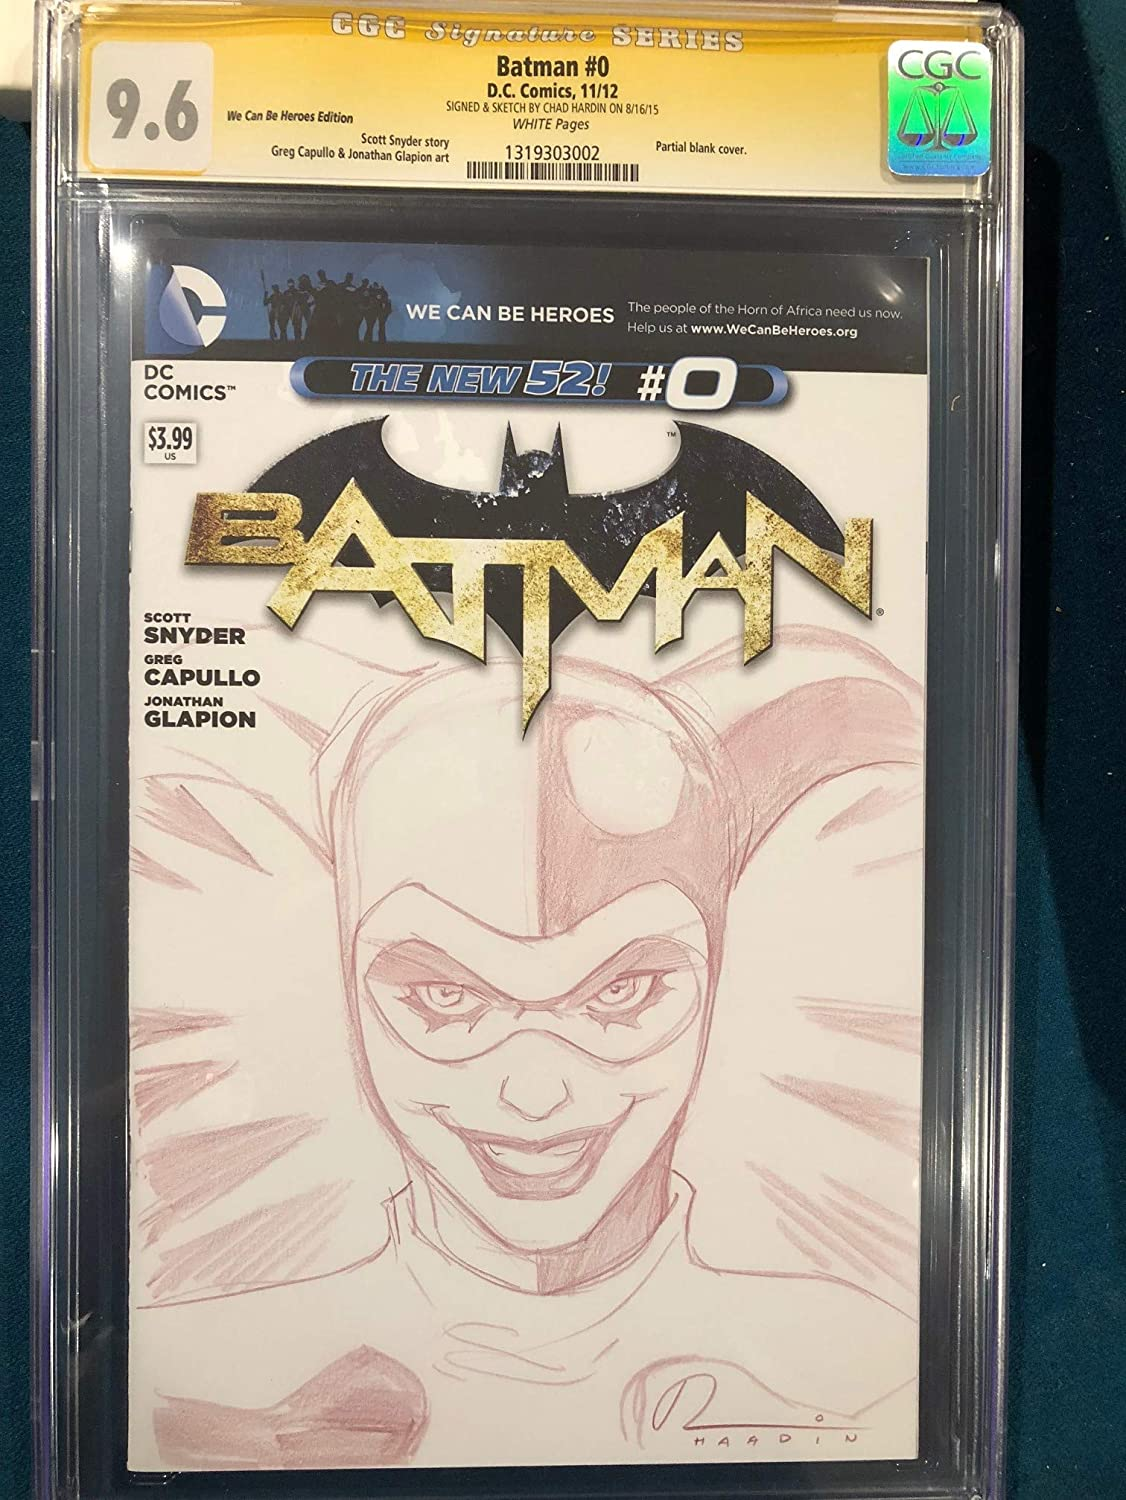 Chad hardin original harley quinn sketch art signed cgc 9 6 joker batman at amazons entertainment collectibles store